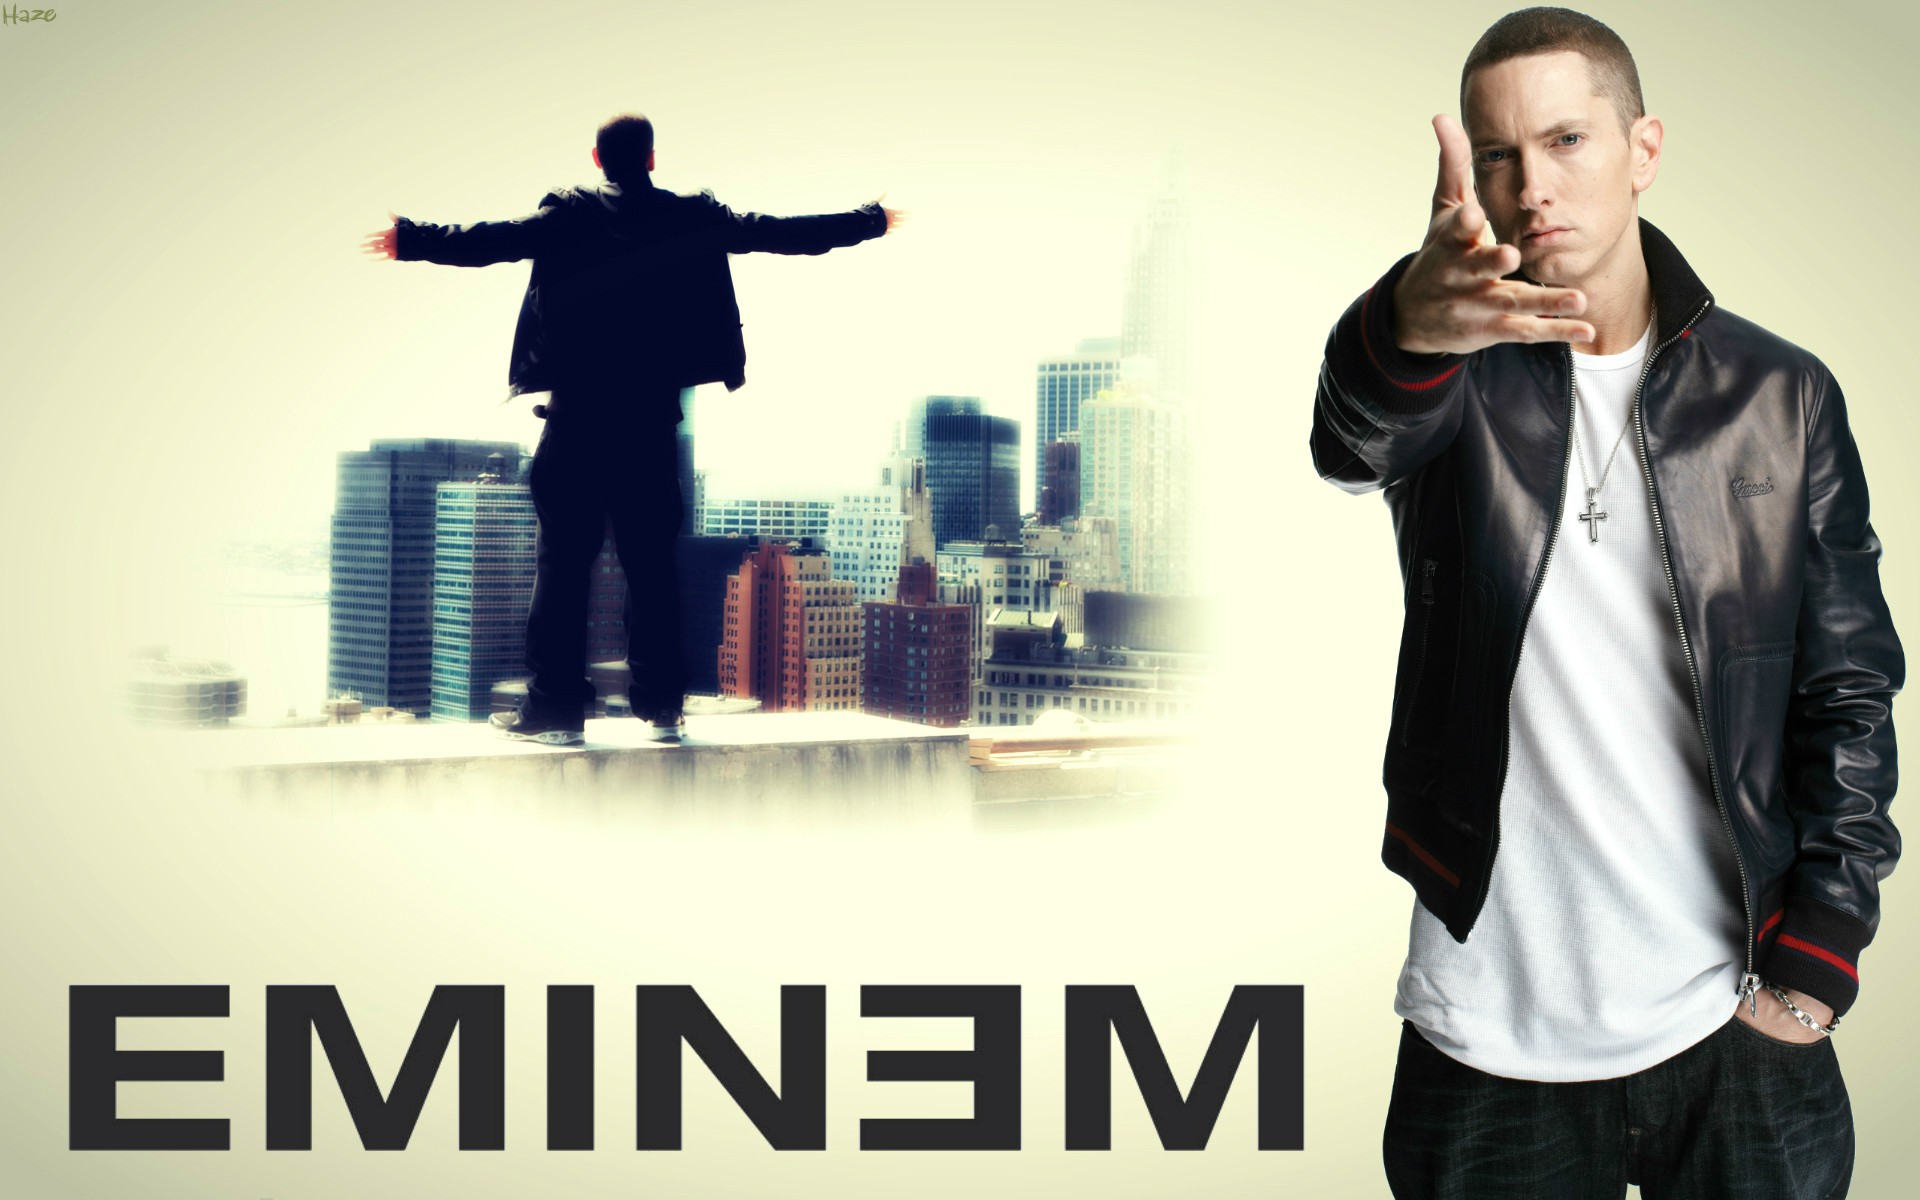 Eminem Not Afraid Cool Wallpaper HD Wallpaper WallpaperLepi 1920x1200